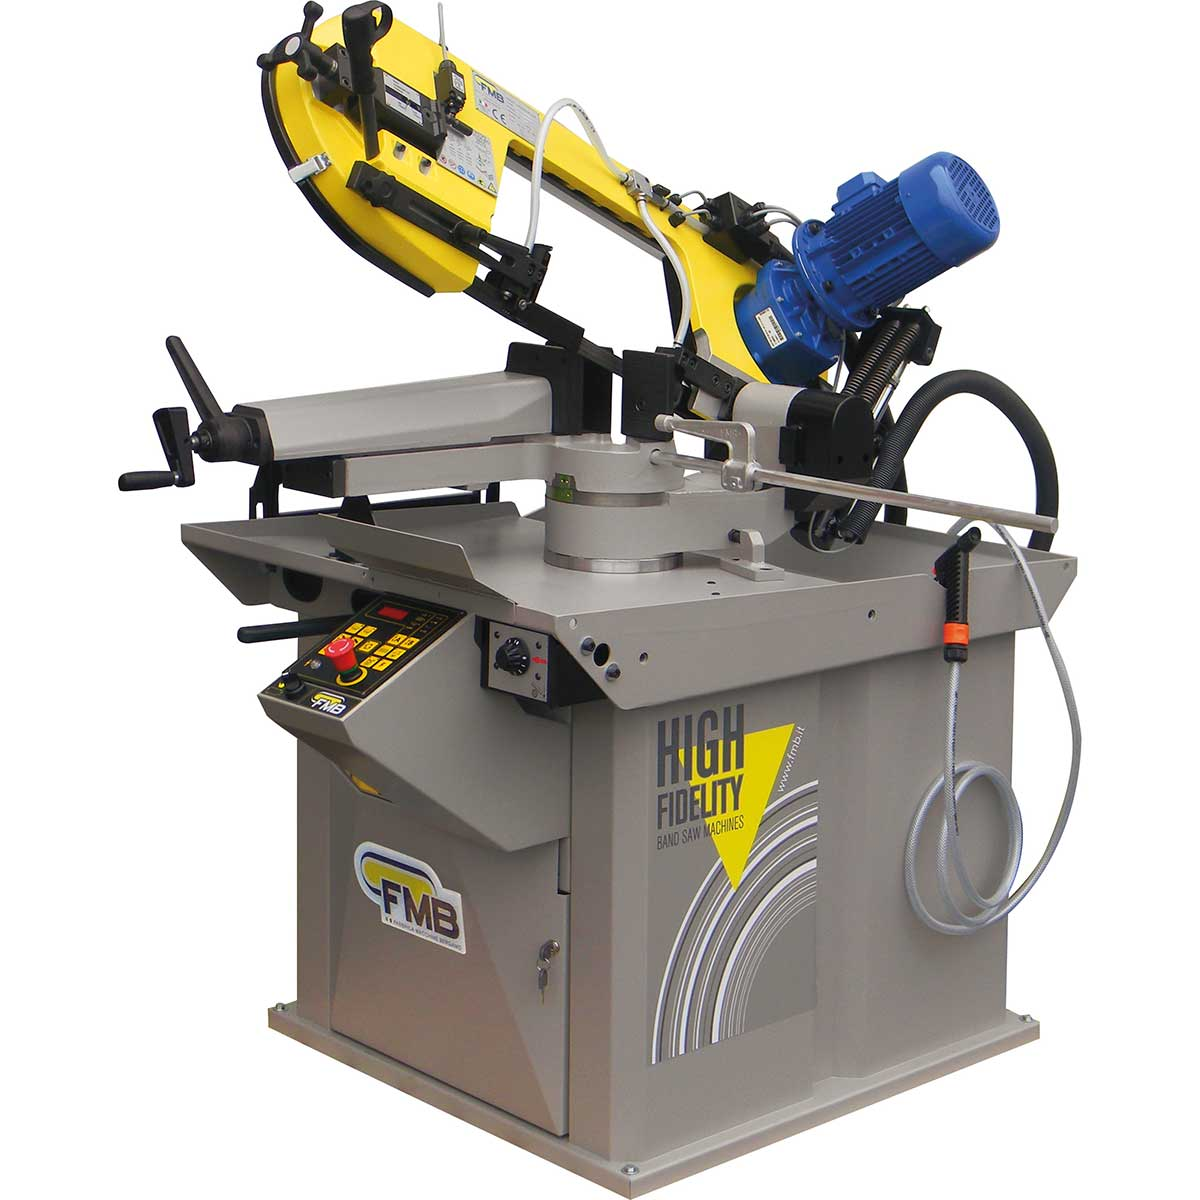 Centauro Manual Band Saw